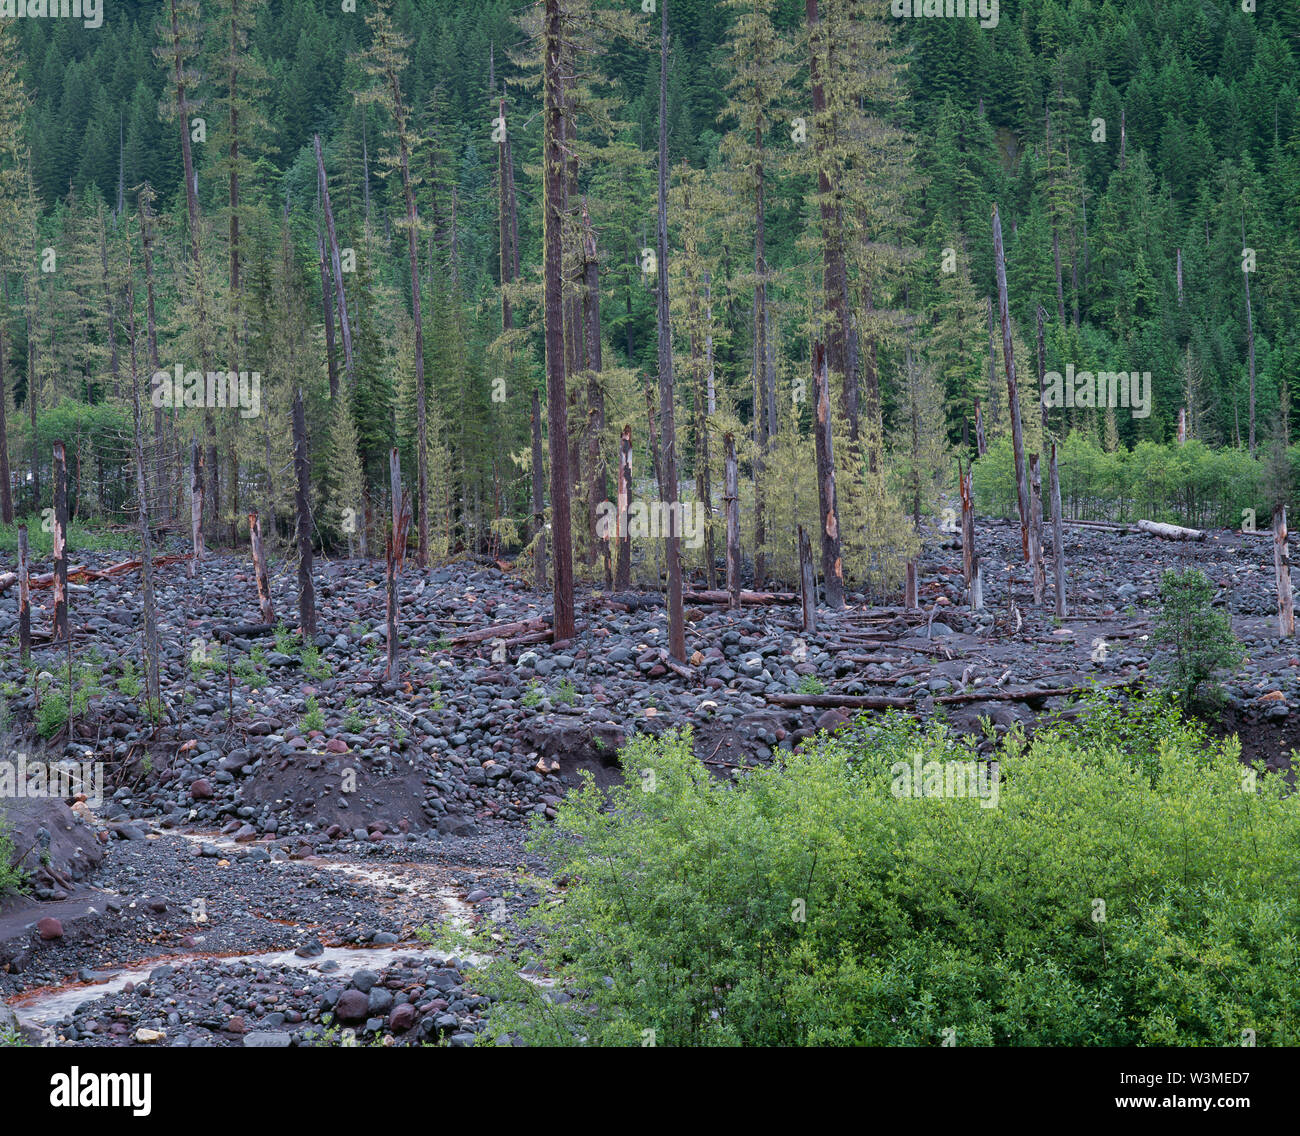 USA, Washington, Mt. Rainier National Park, Outwash from the Tahoma Glacier created a flood and debri flow along Tahoma Creek and adjacent forest. Stock Photo